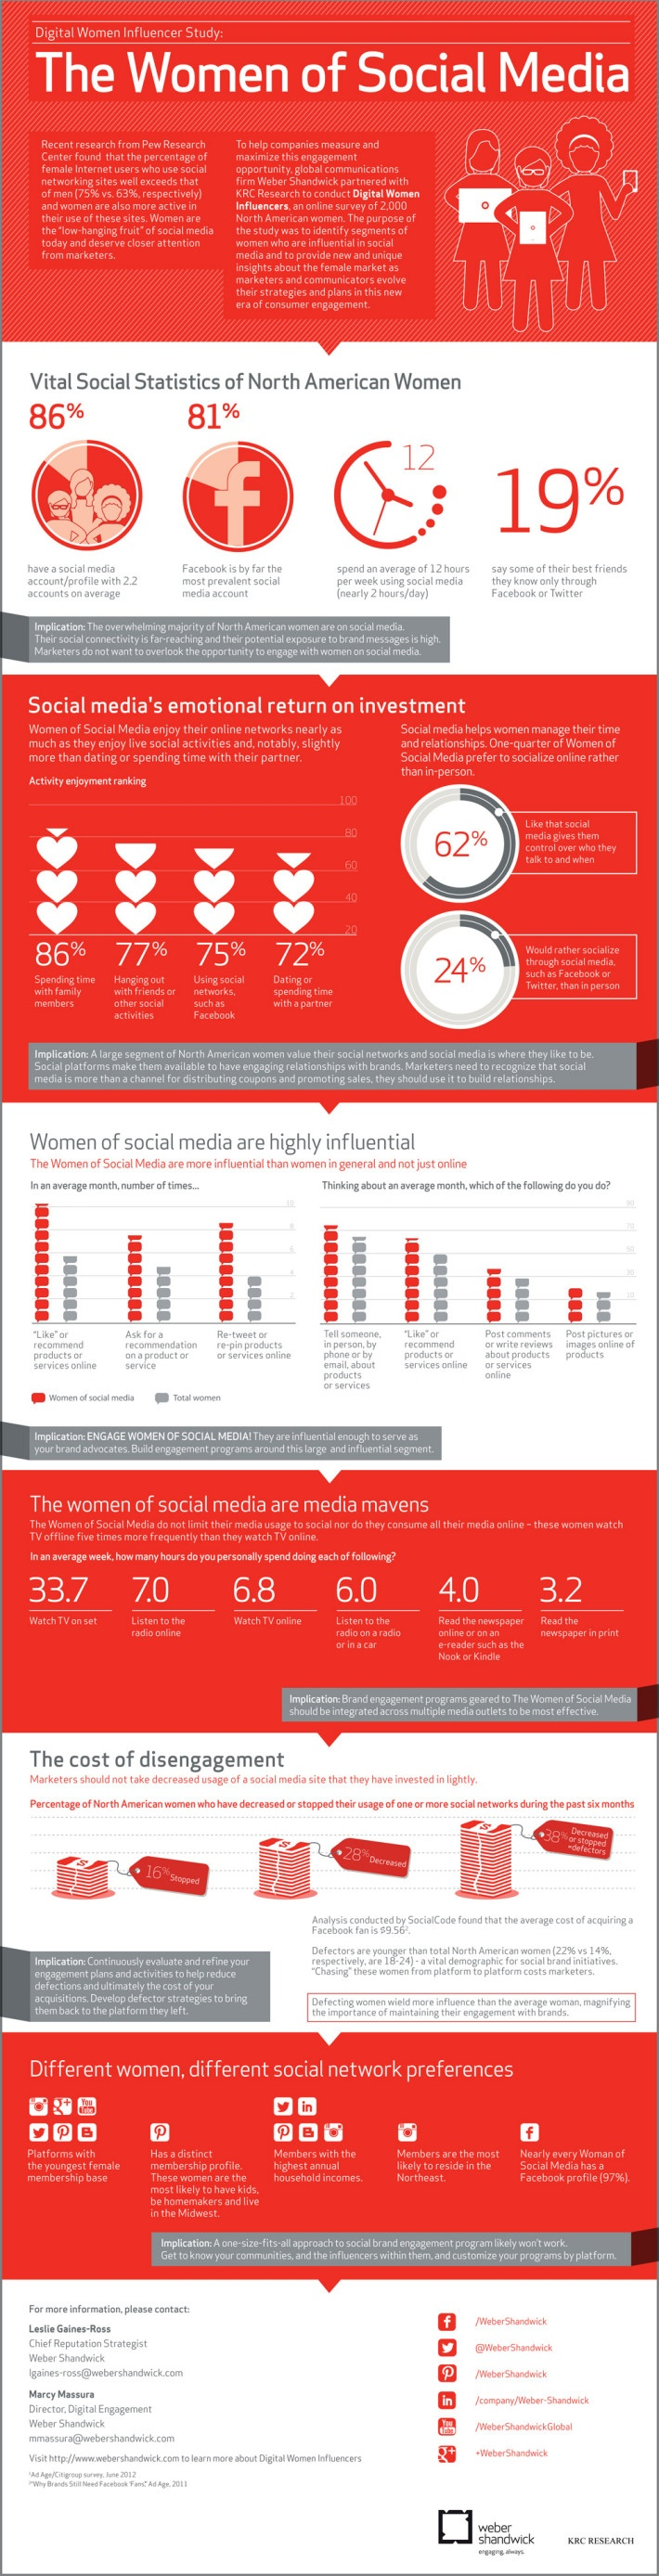 Why does female usage exceeds that of men on social media? Are you surprised by the statistics from this infographic?